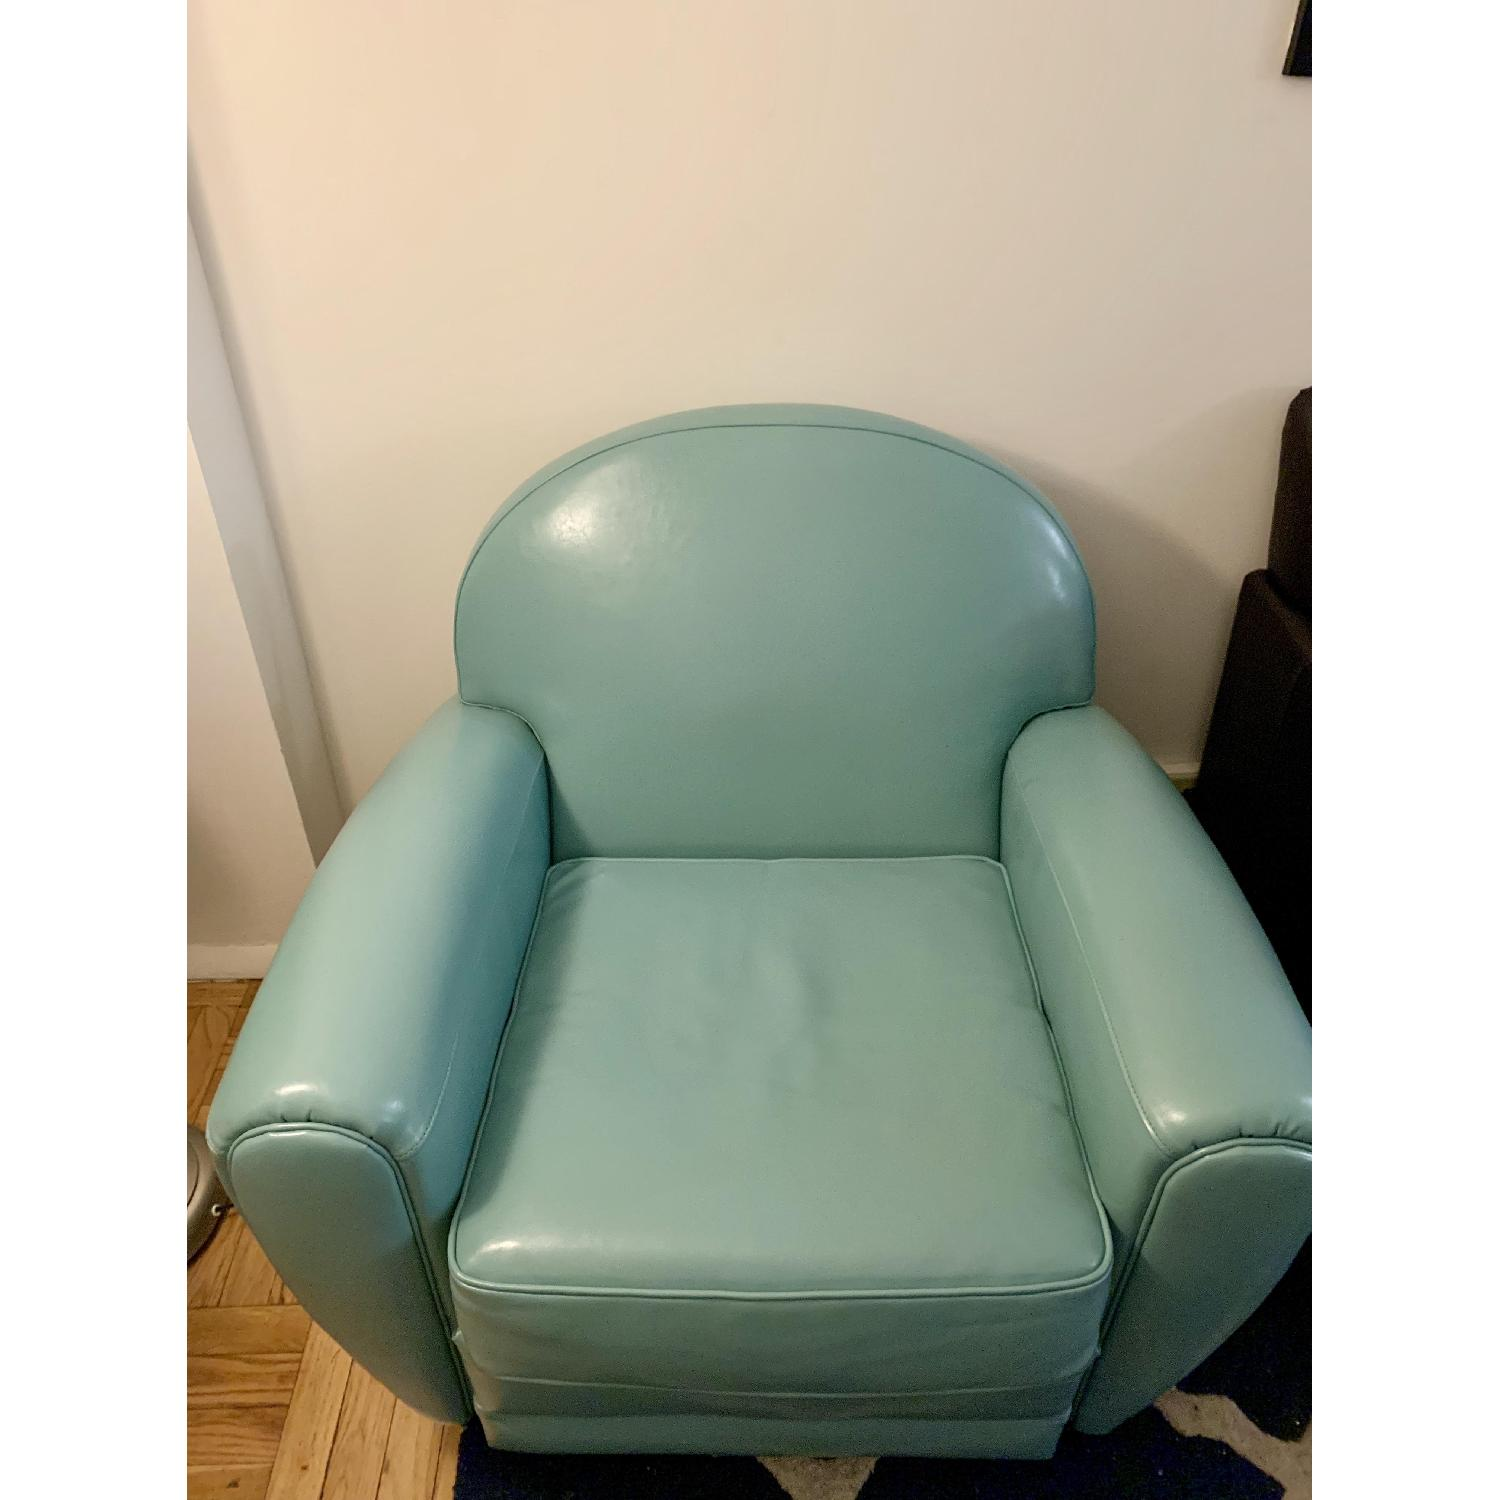 Home Loft Concept Lorenz Leather Cigar Chair in Teal Blue - image-1